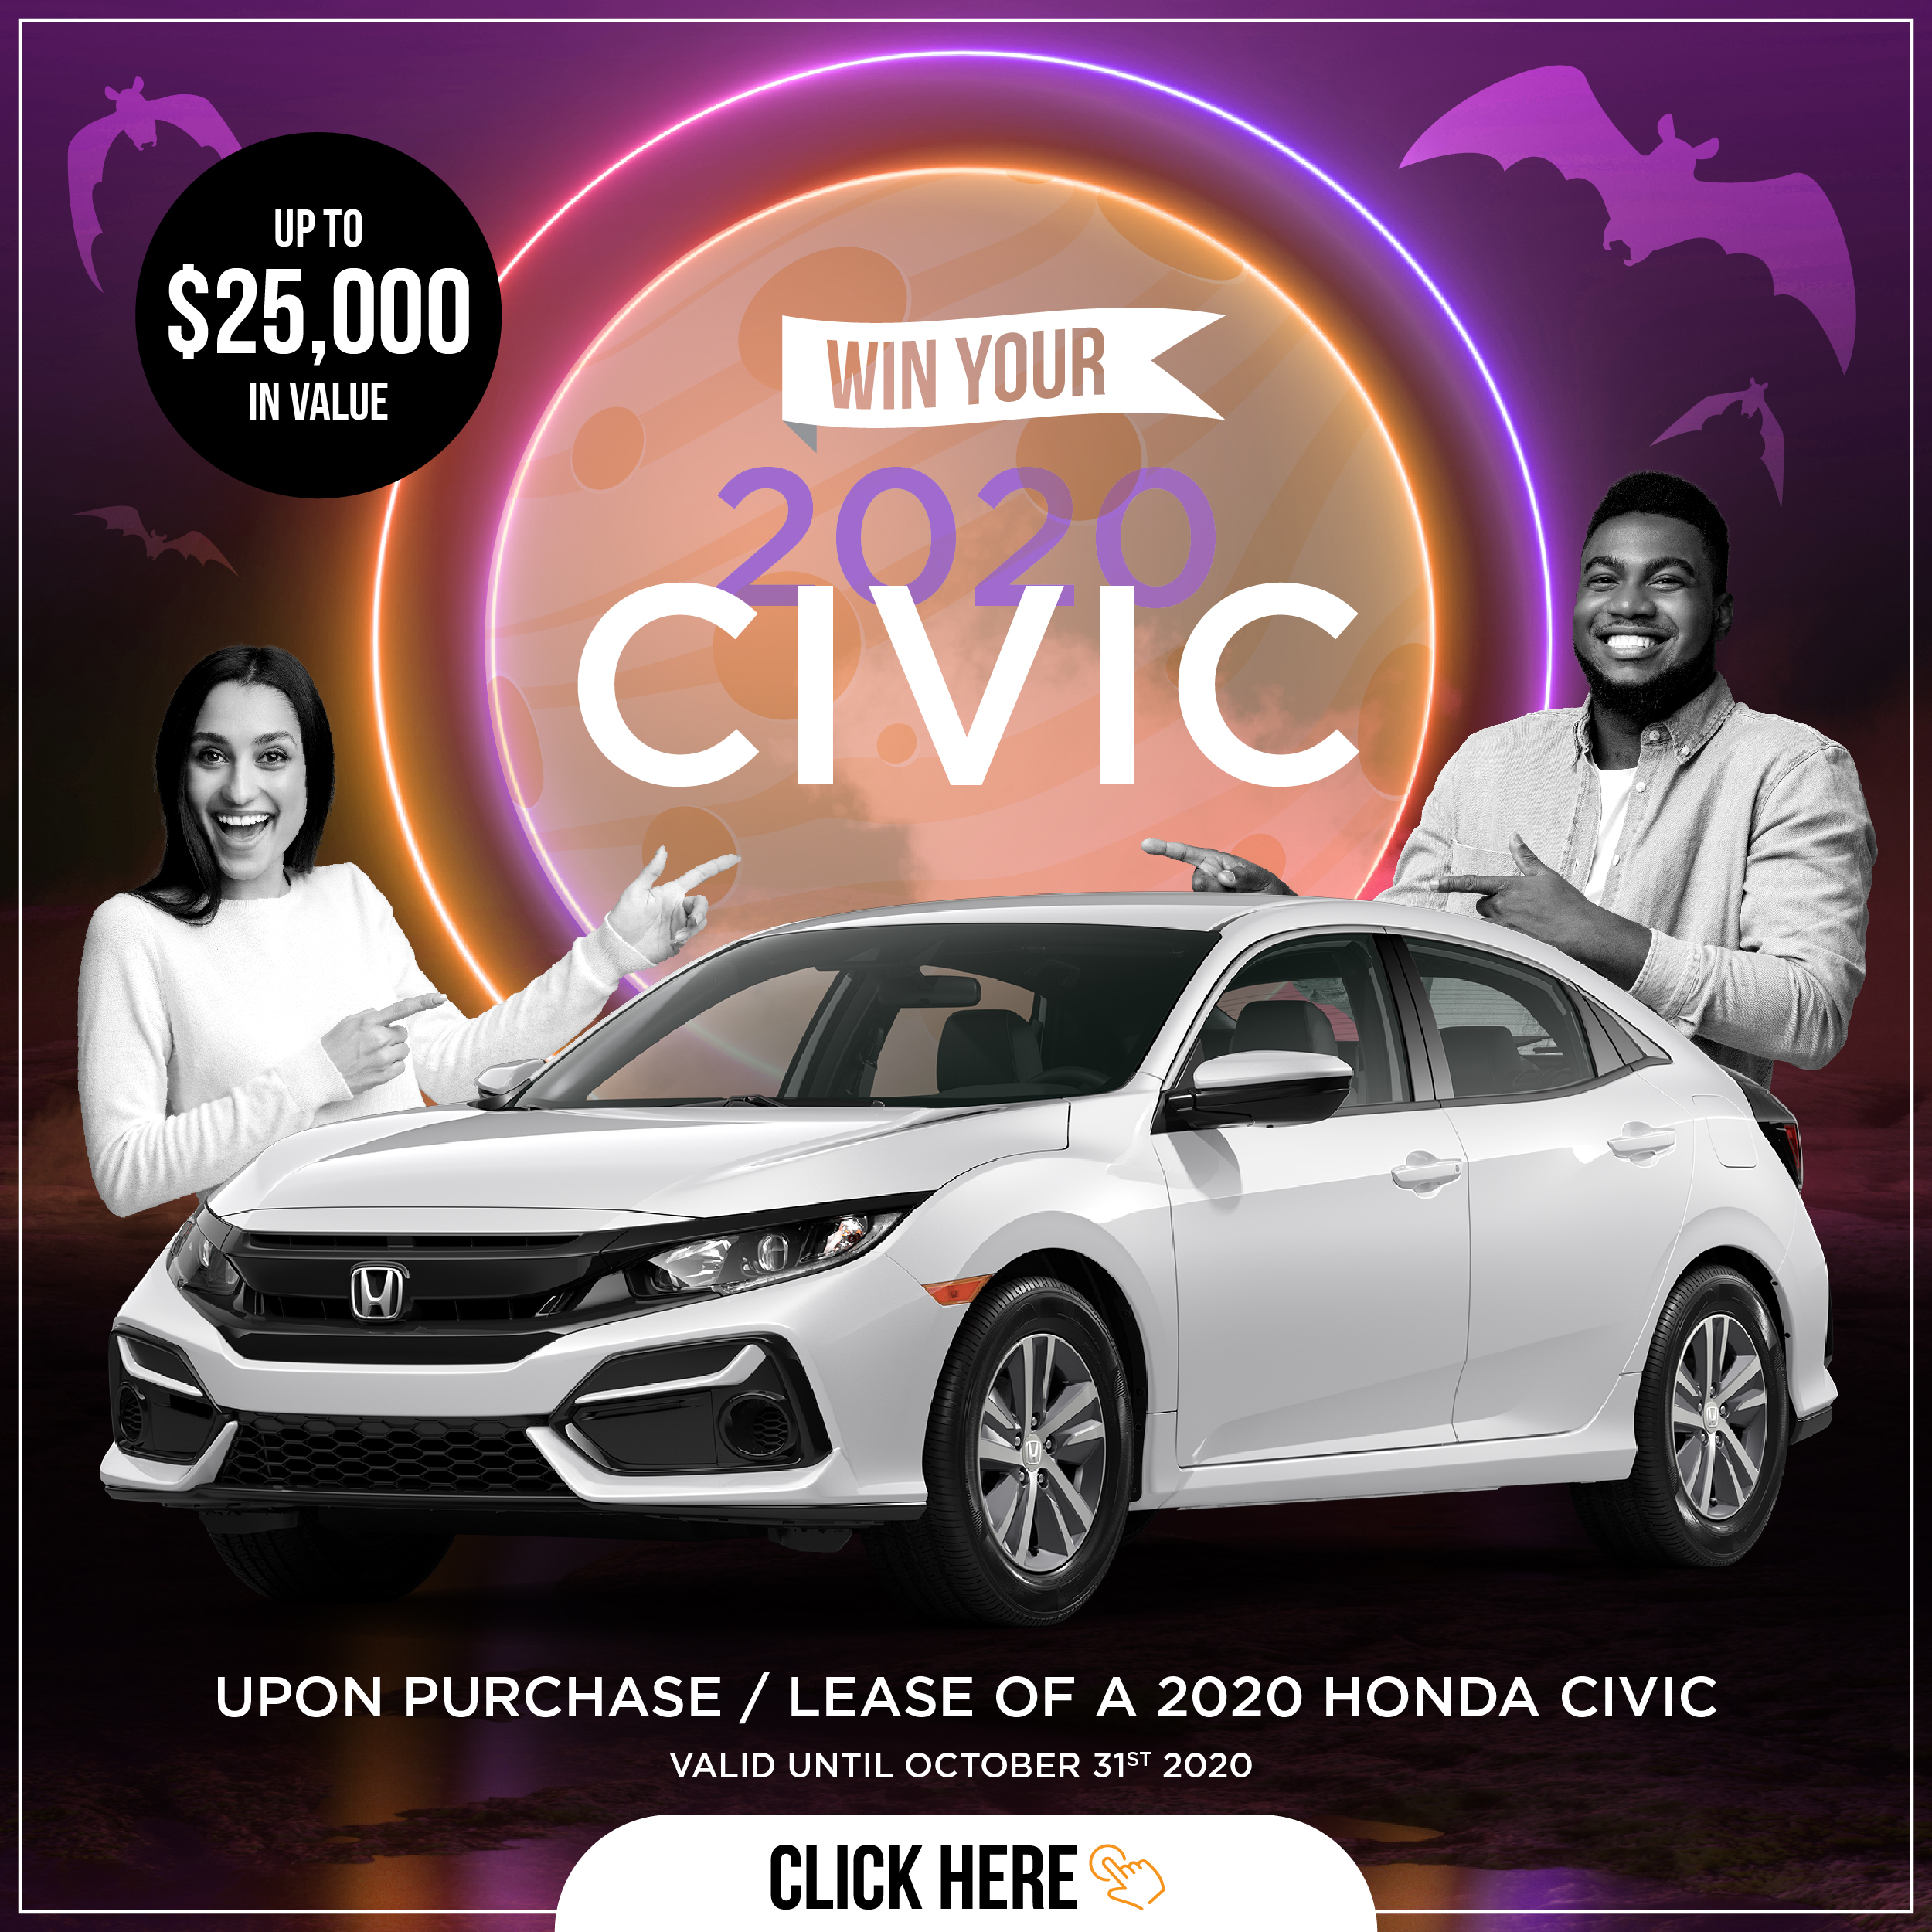 2020 Win Your Civic